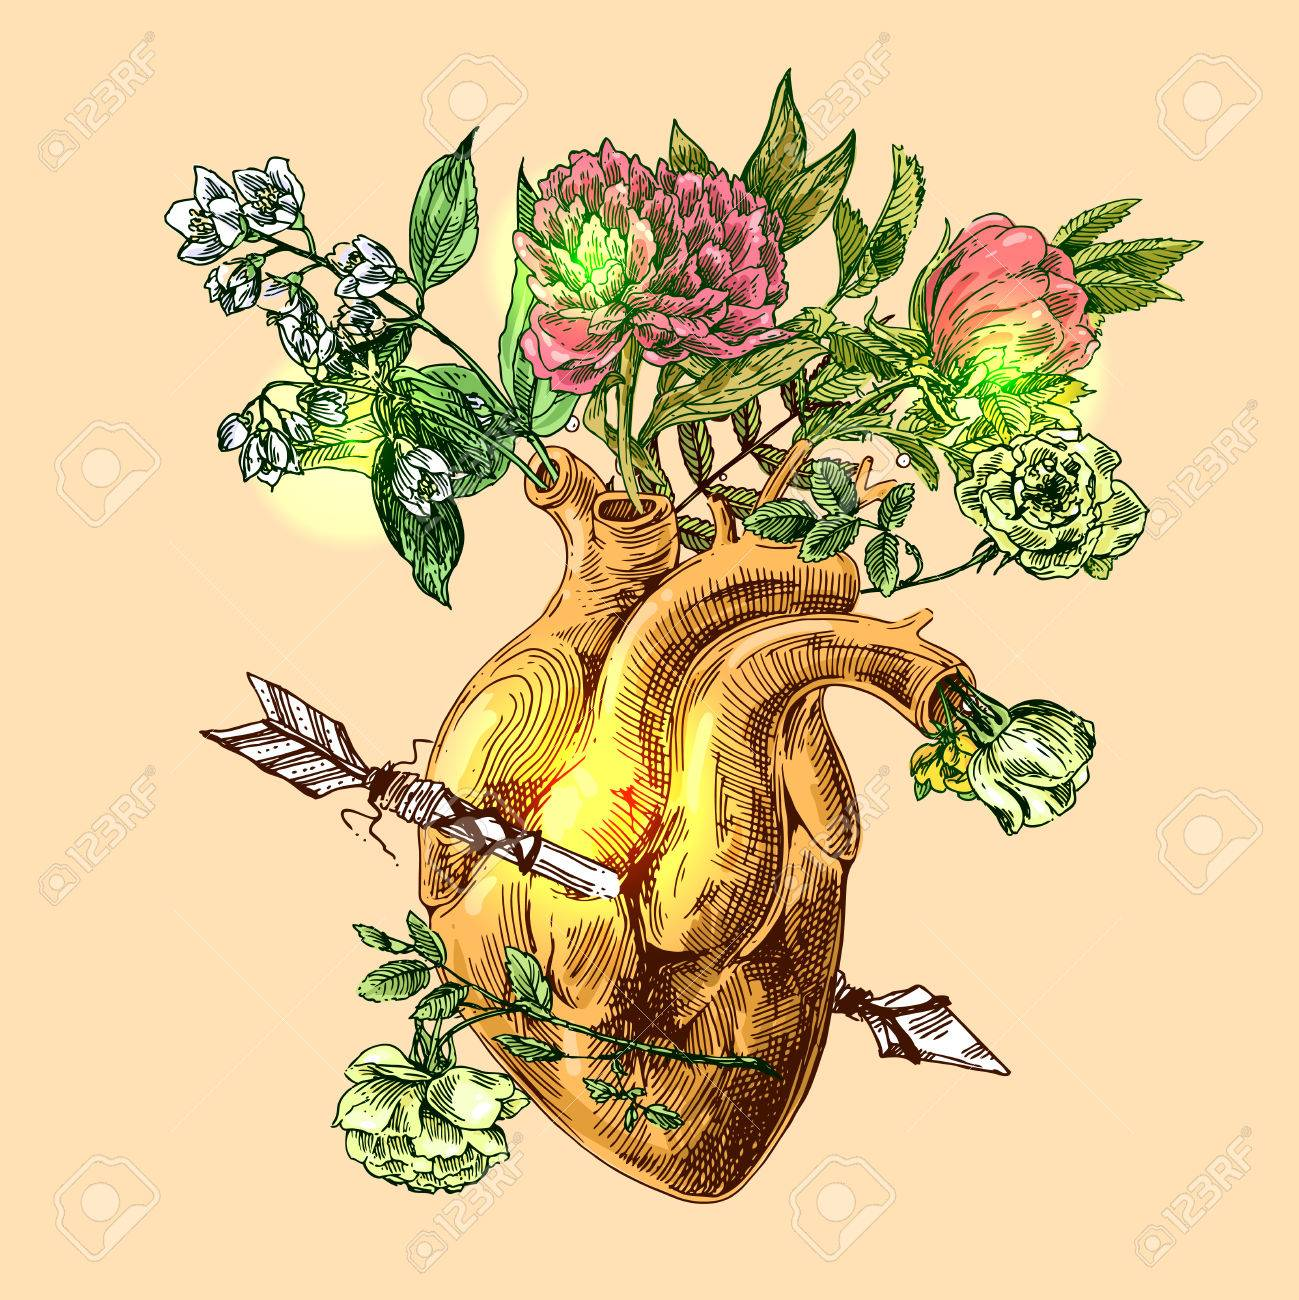 3bbb17db9 Illustration with sketch of human heart and flowers. Hand drawn vector  background.Boho style